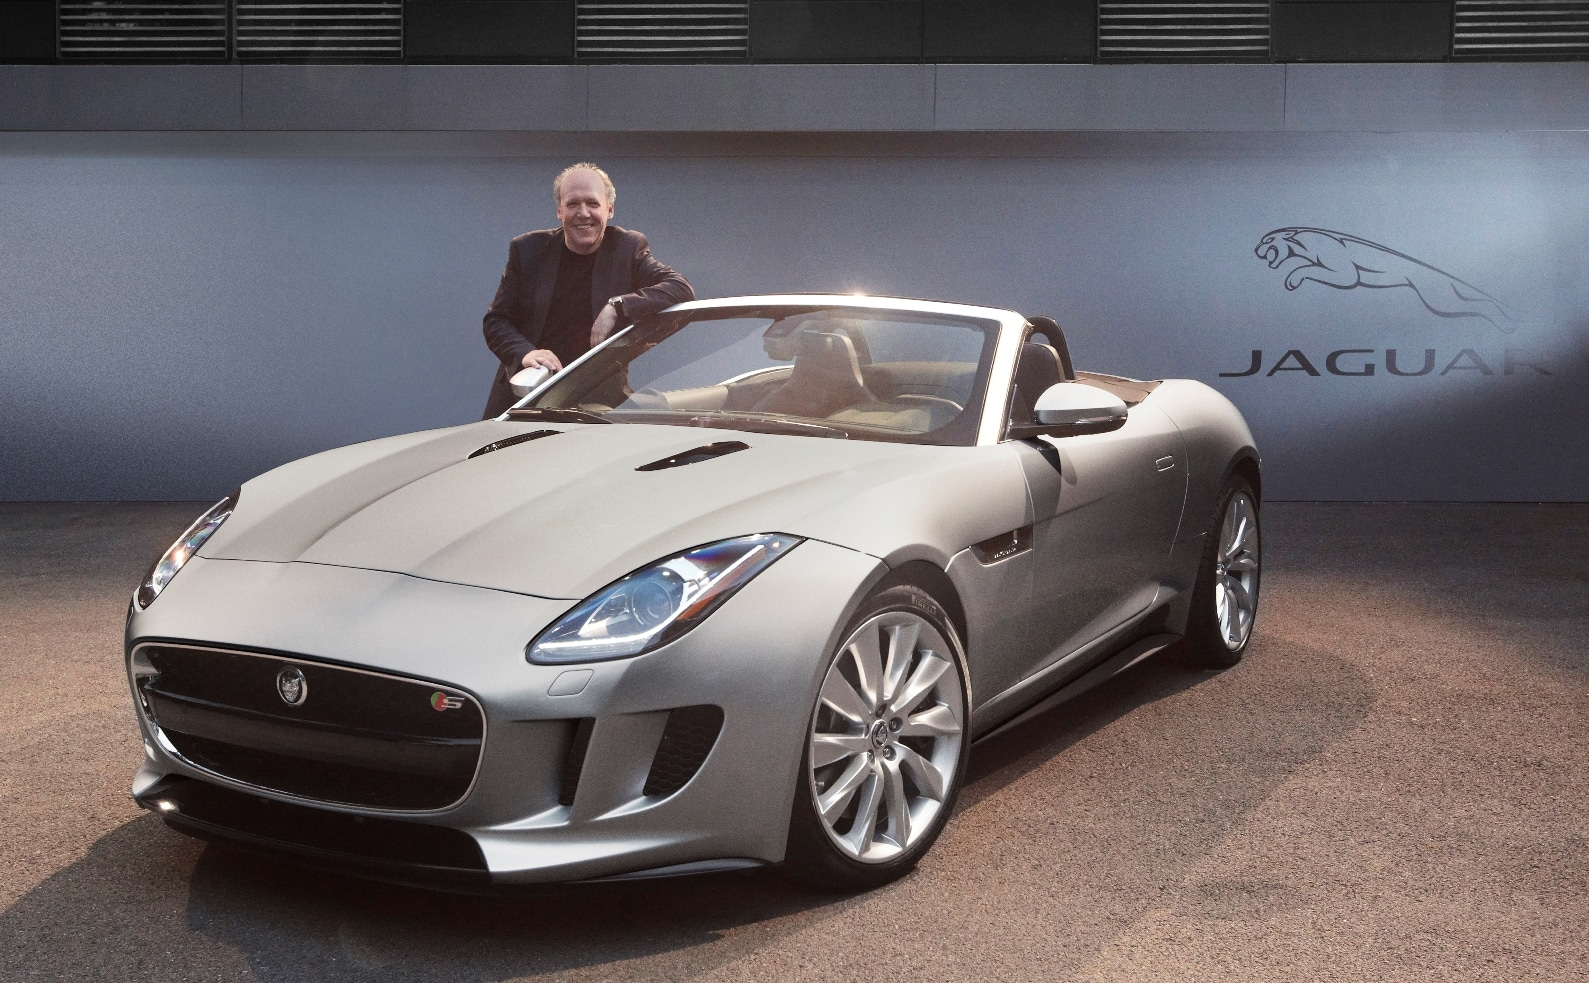 Jaguar F-TYPE proclamata World Car Design of the Year 2013